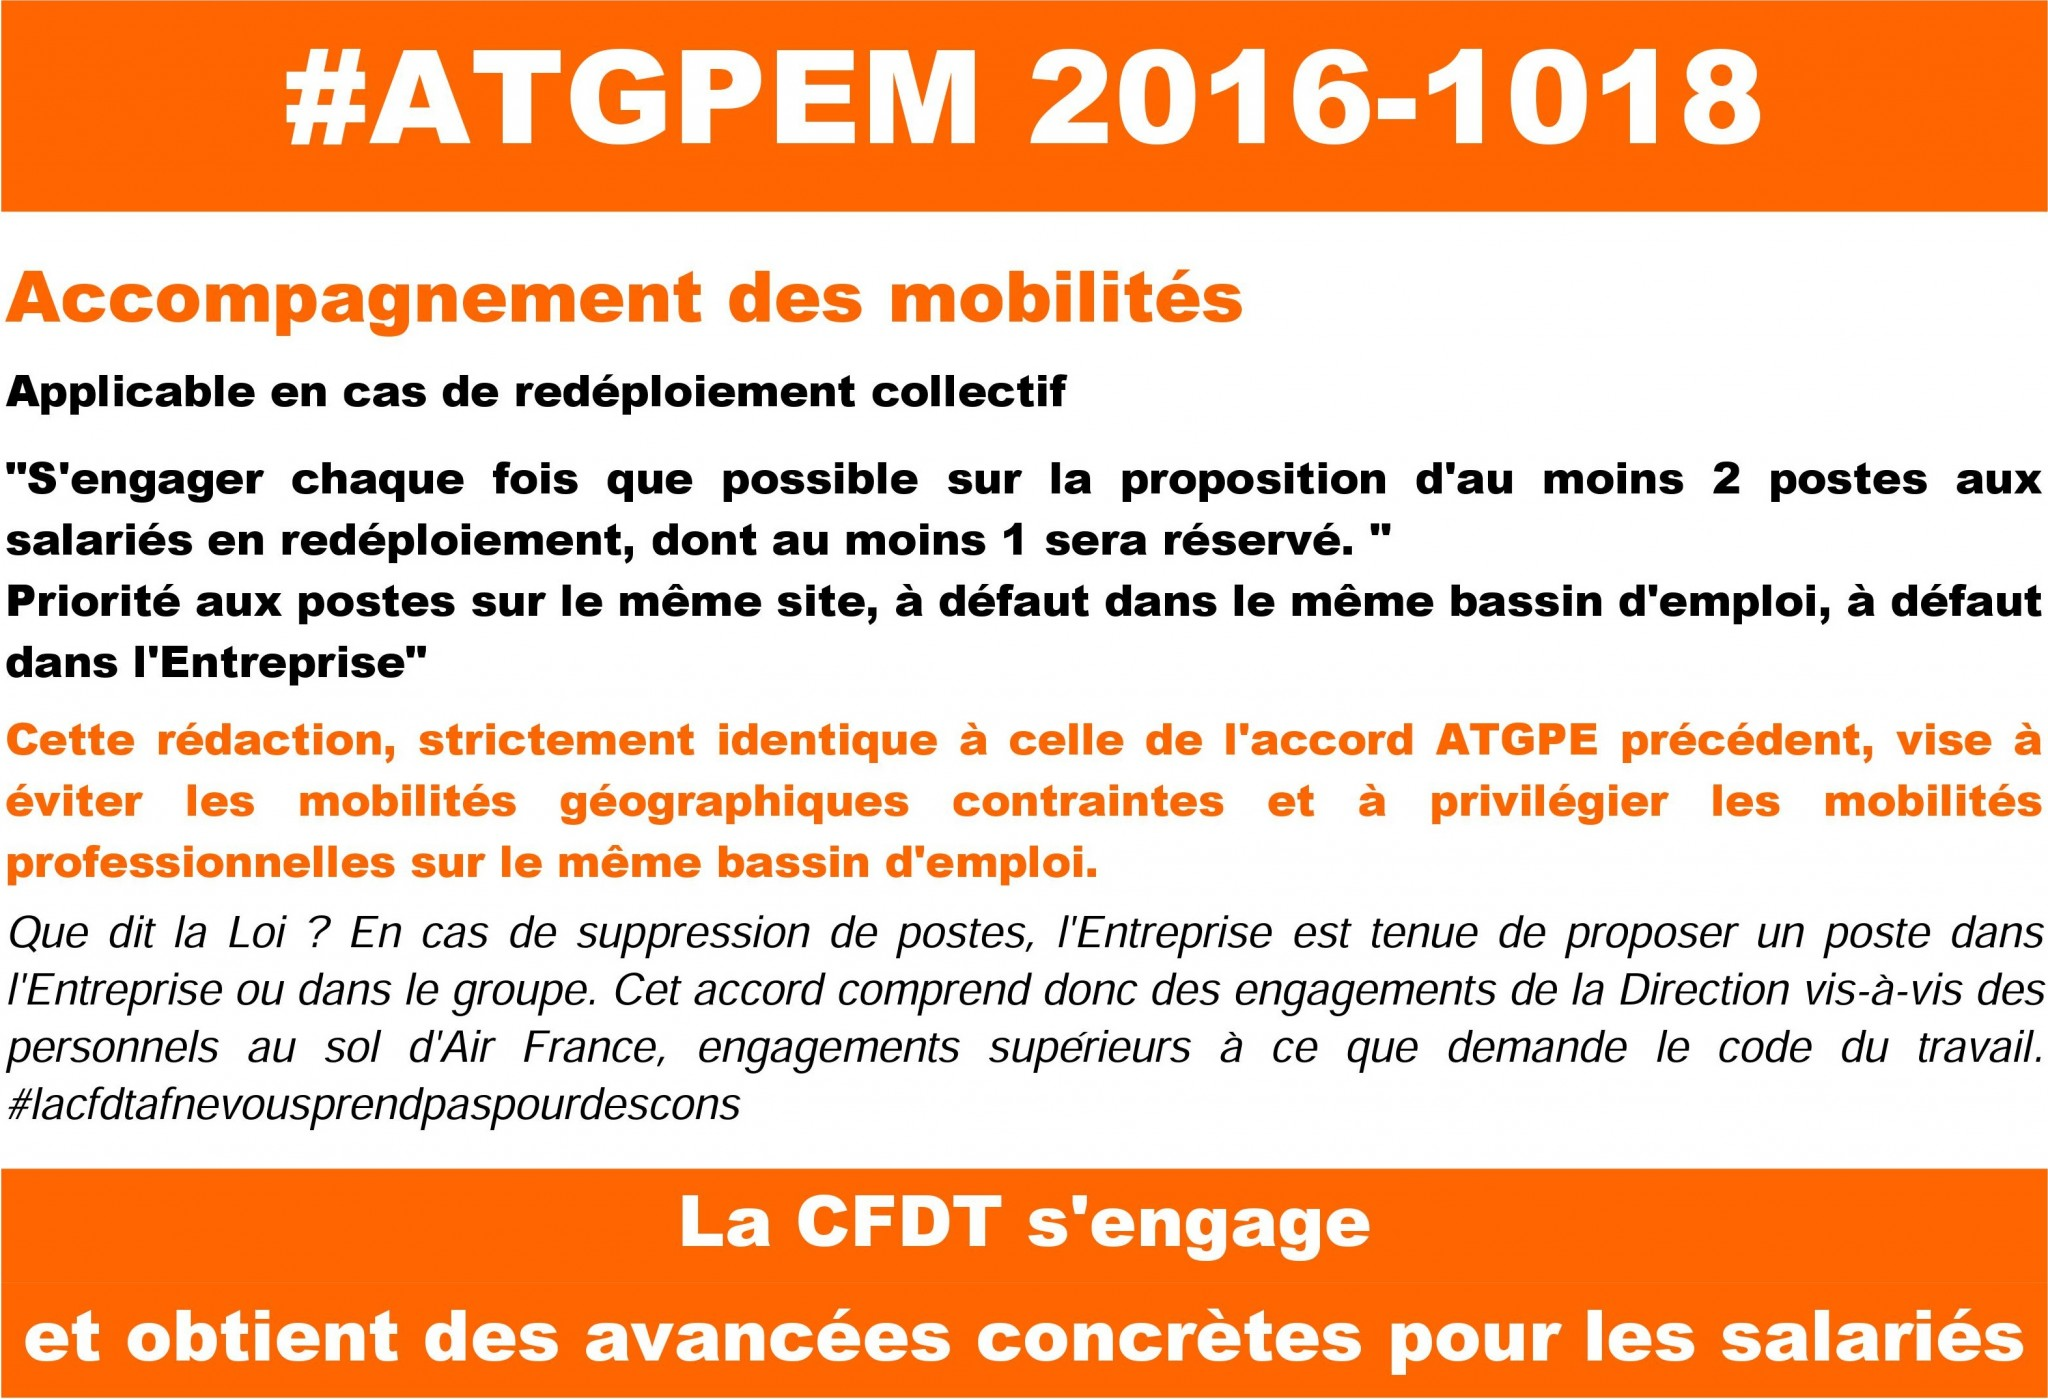 communication ATGPEM 2016 6